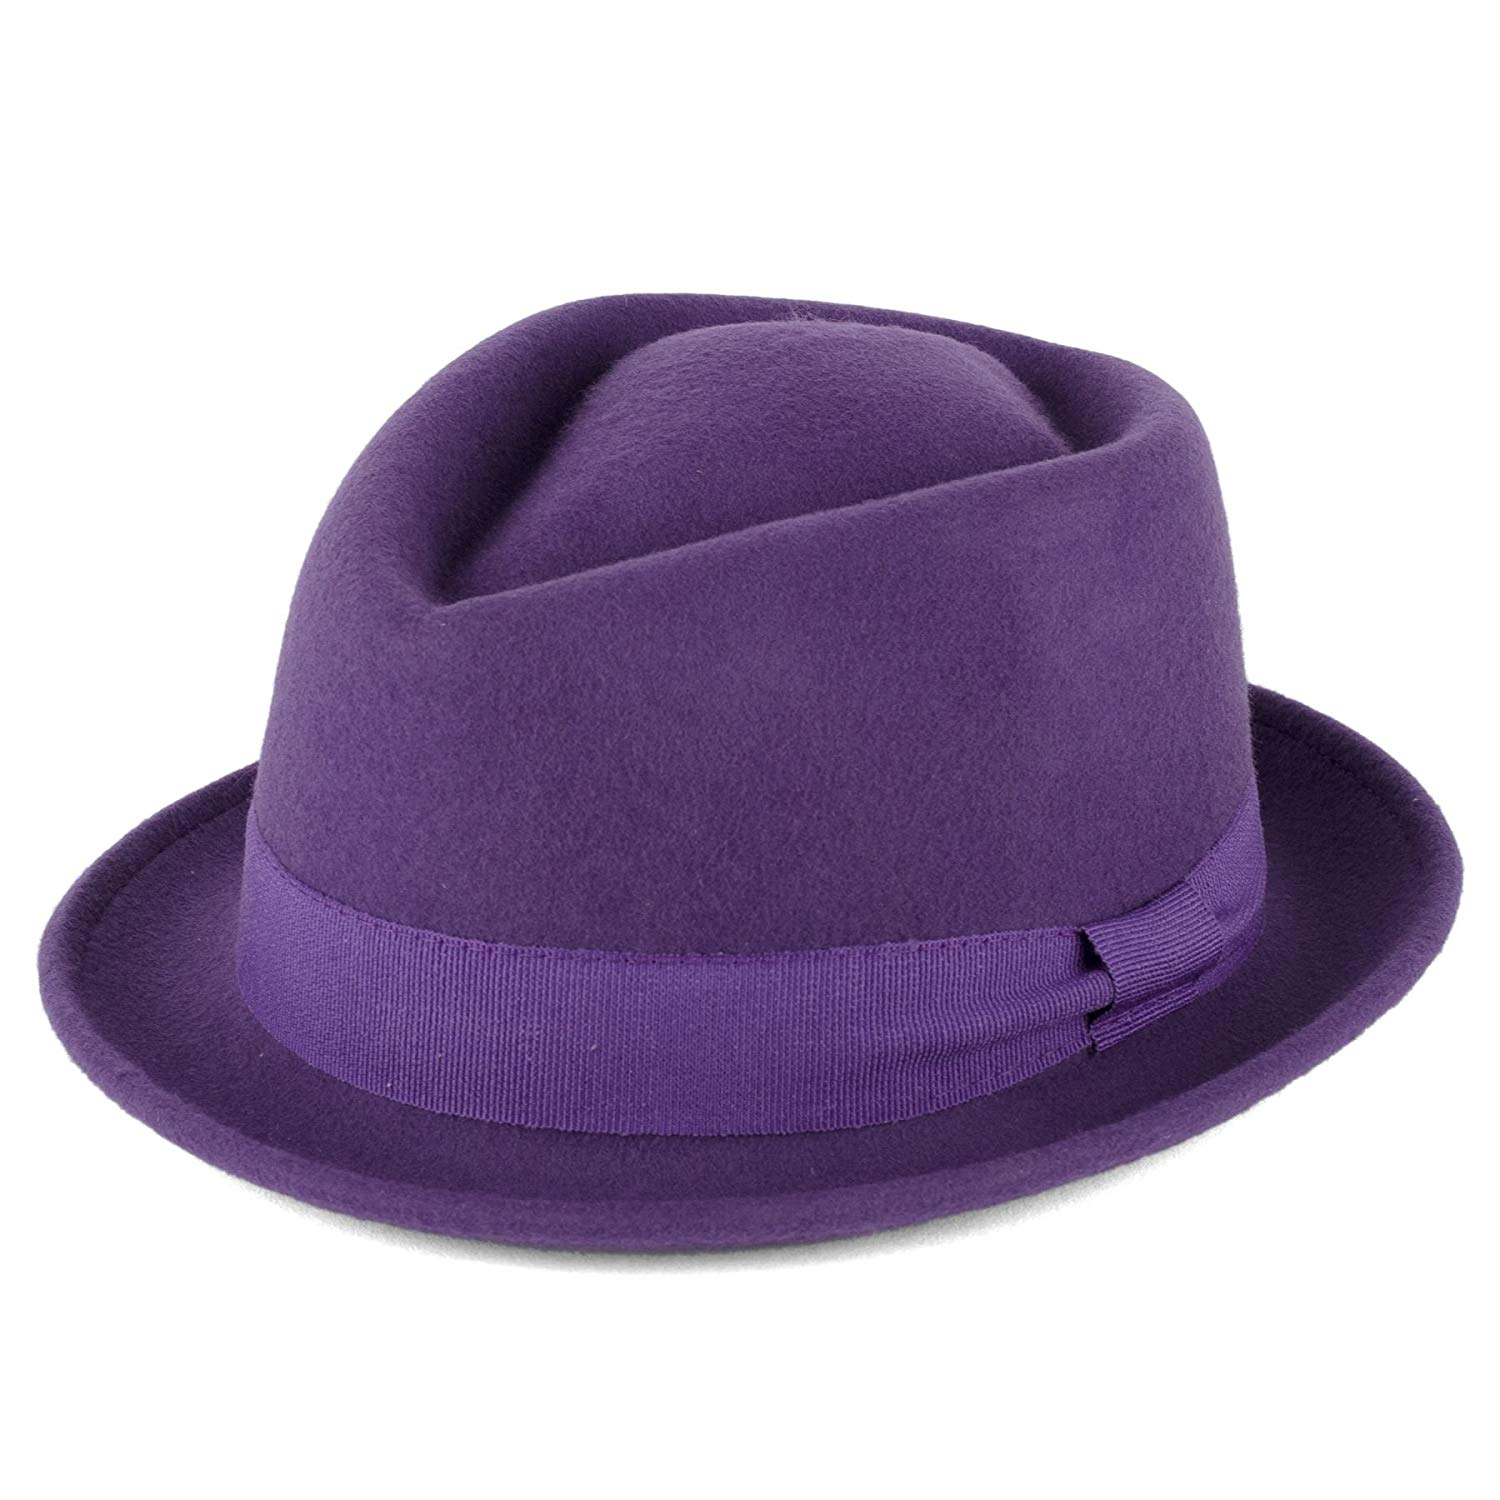 Get Quotations · Wool Diamond Shaped Pork Pie Hat with Grosgrain Band  Handmade in Italy 6ceb4e63ee80